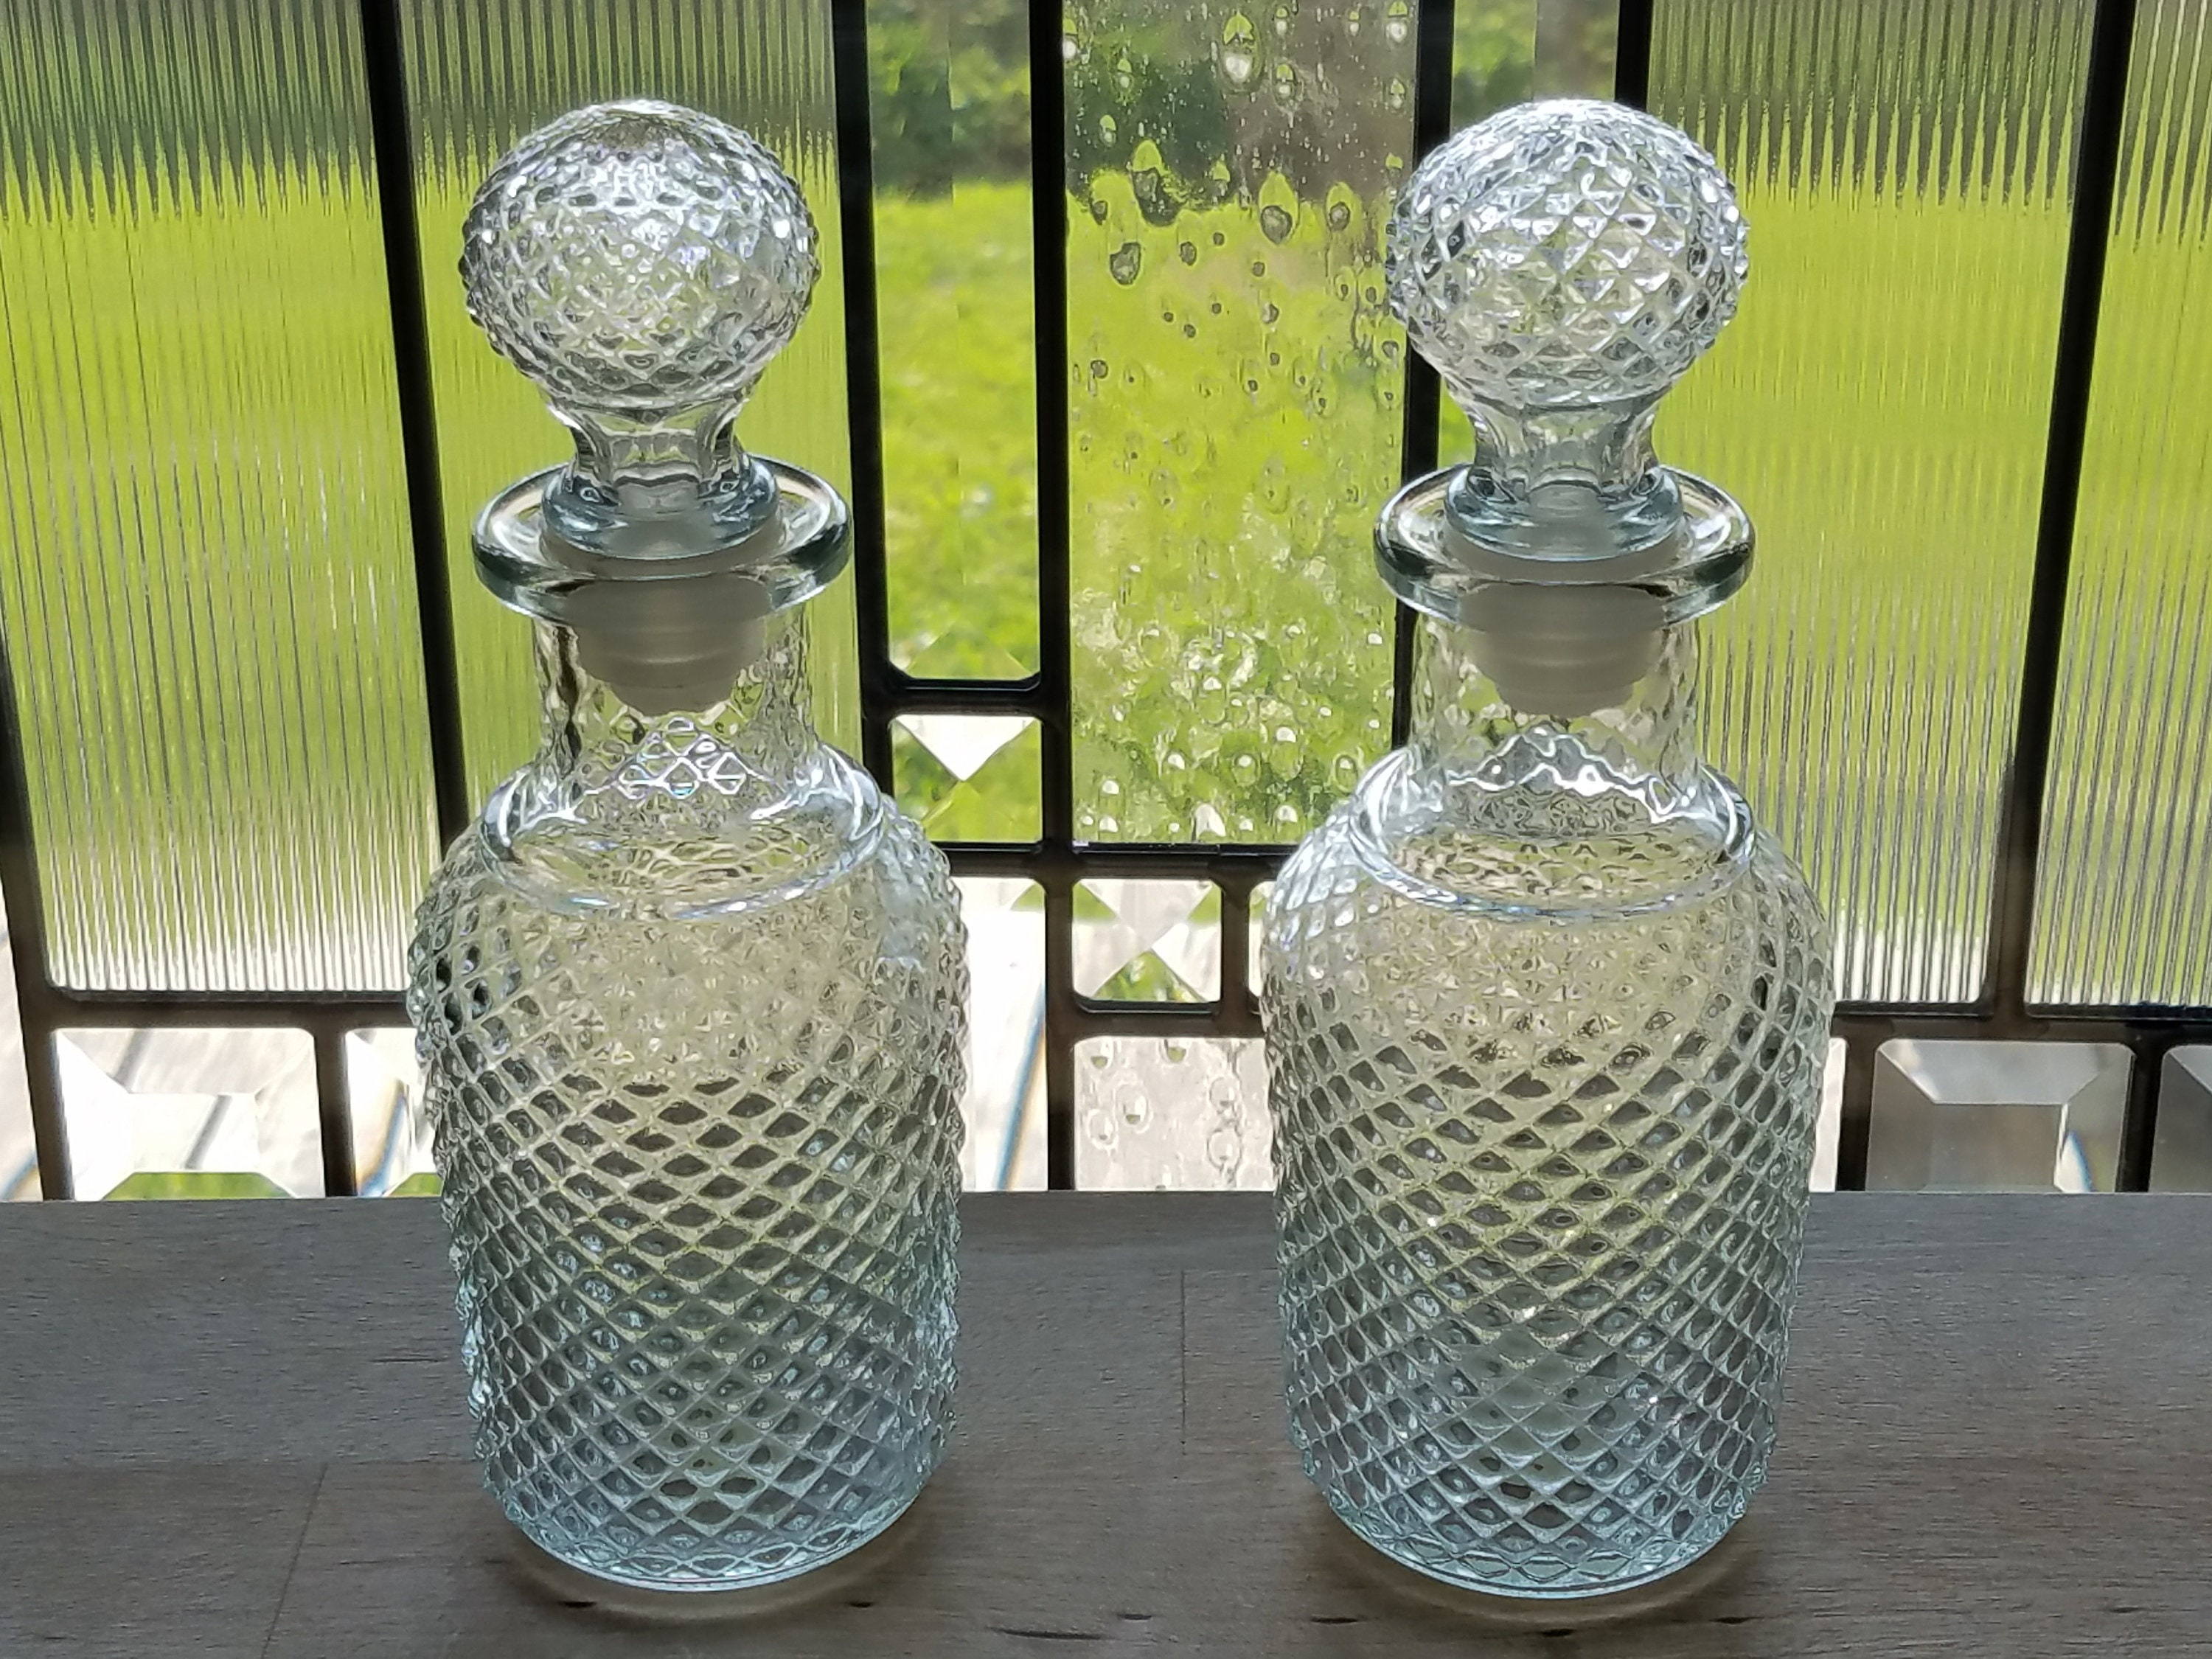 Vintage Avon Apothecary Decanter Set Of 2 Avon Perfume Bottle